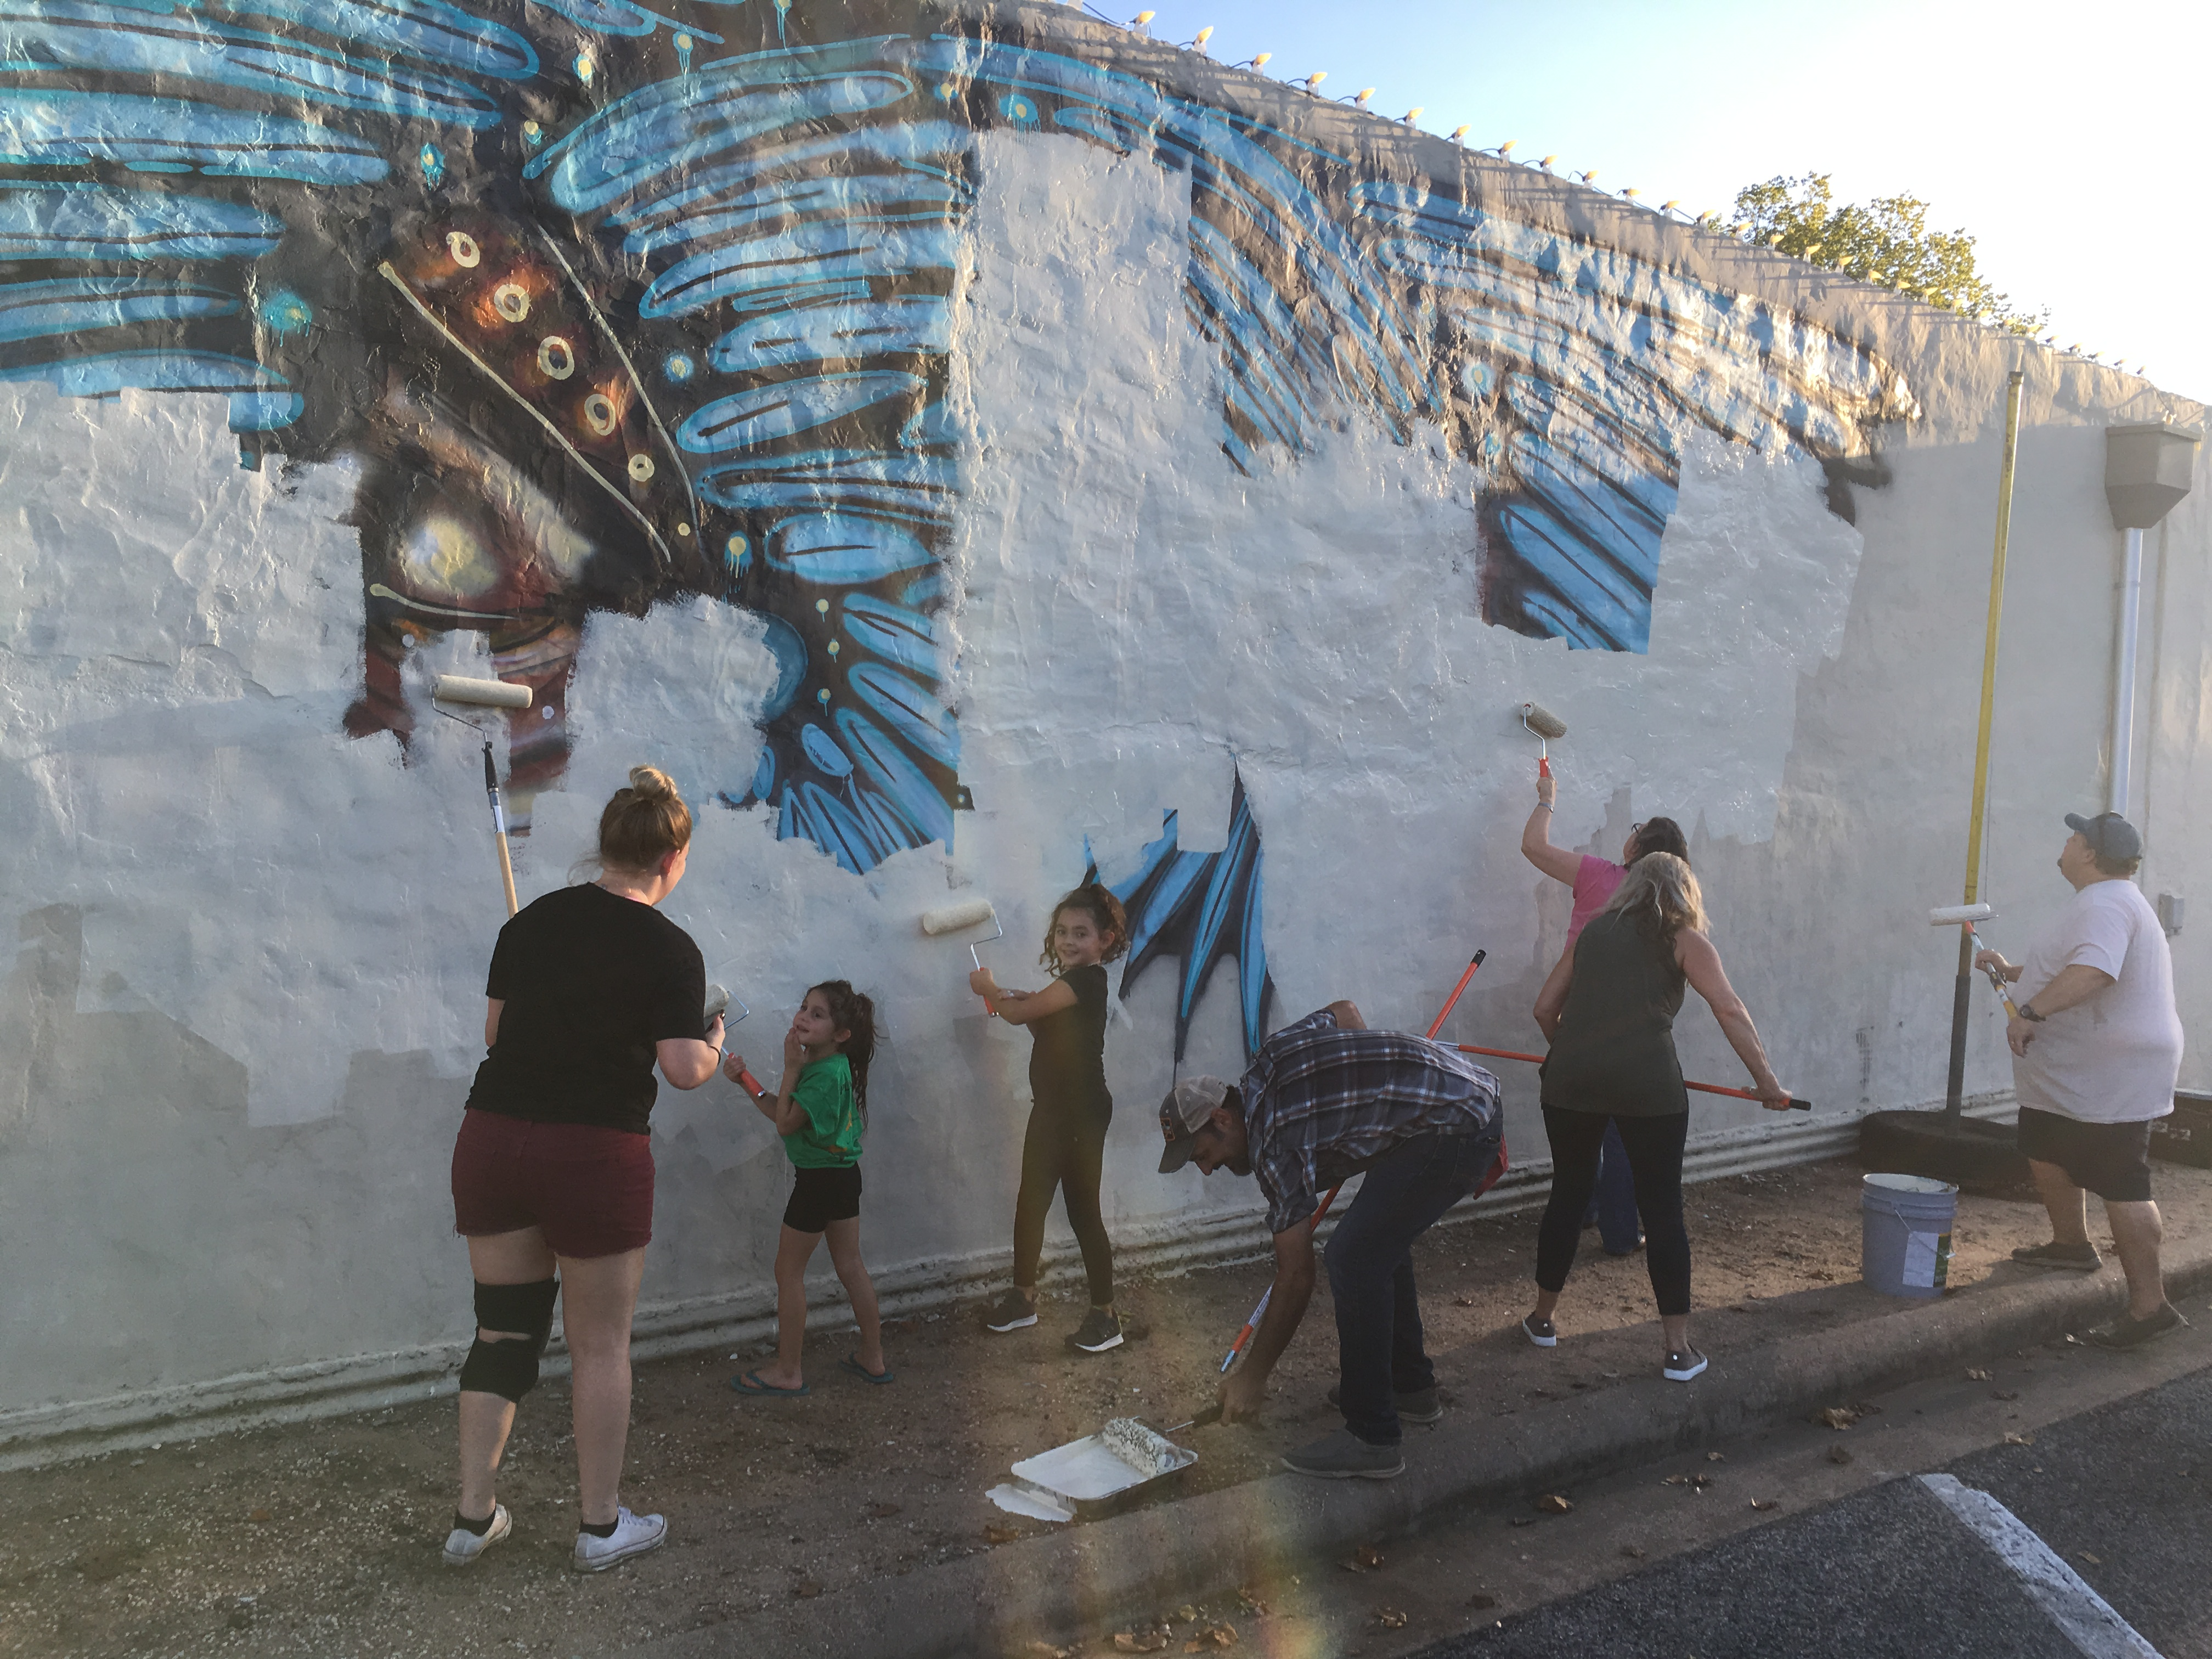 Texas Arts And Music Festival Paints Over Walls For New Murals